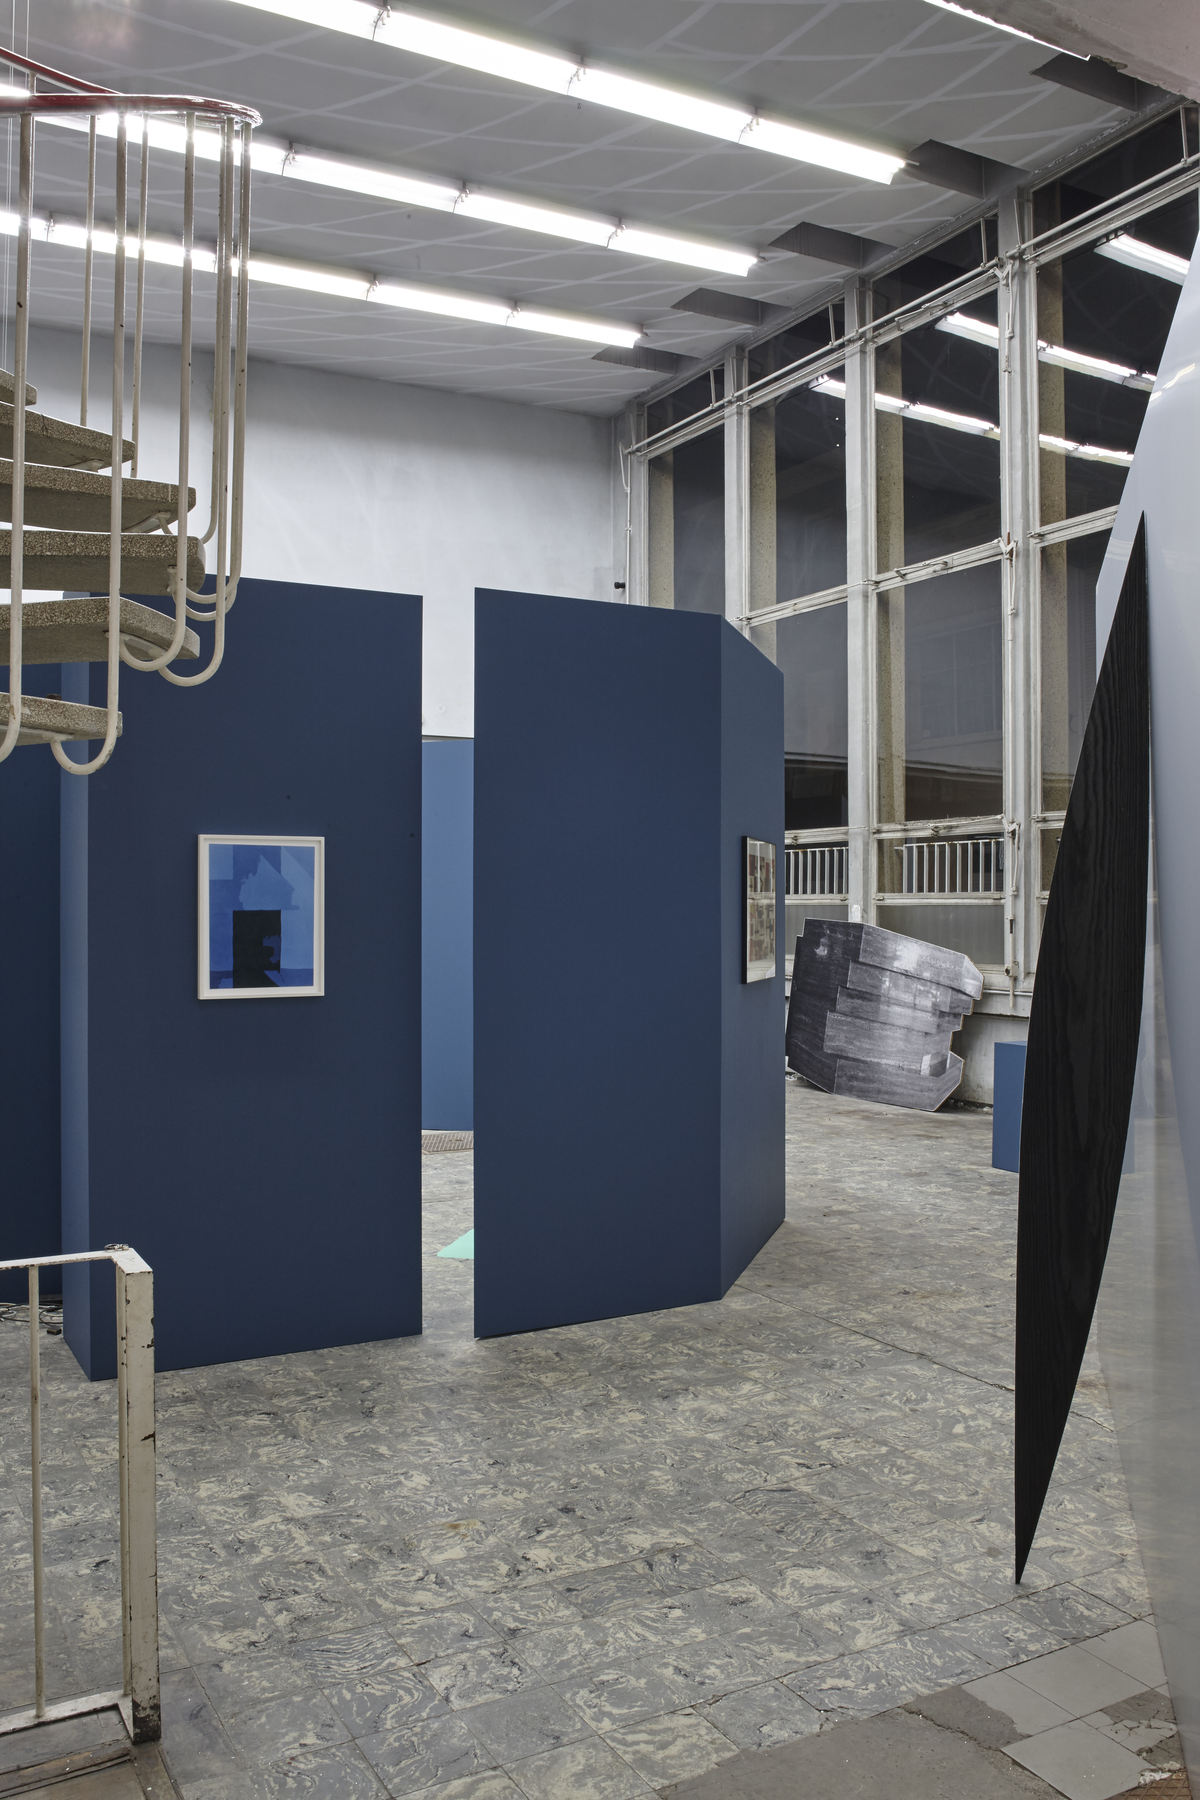 'The Corner Show', installation view, Extra City Kunsthal, 2015 © Jan Kempenaers324